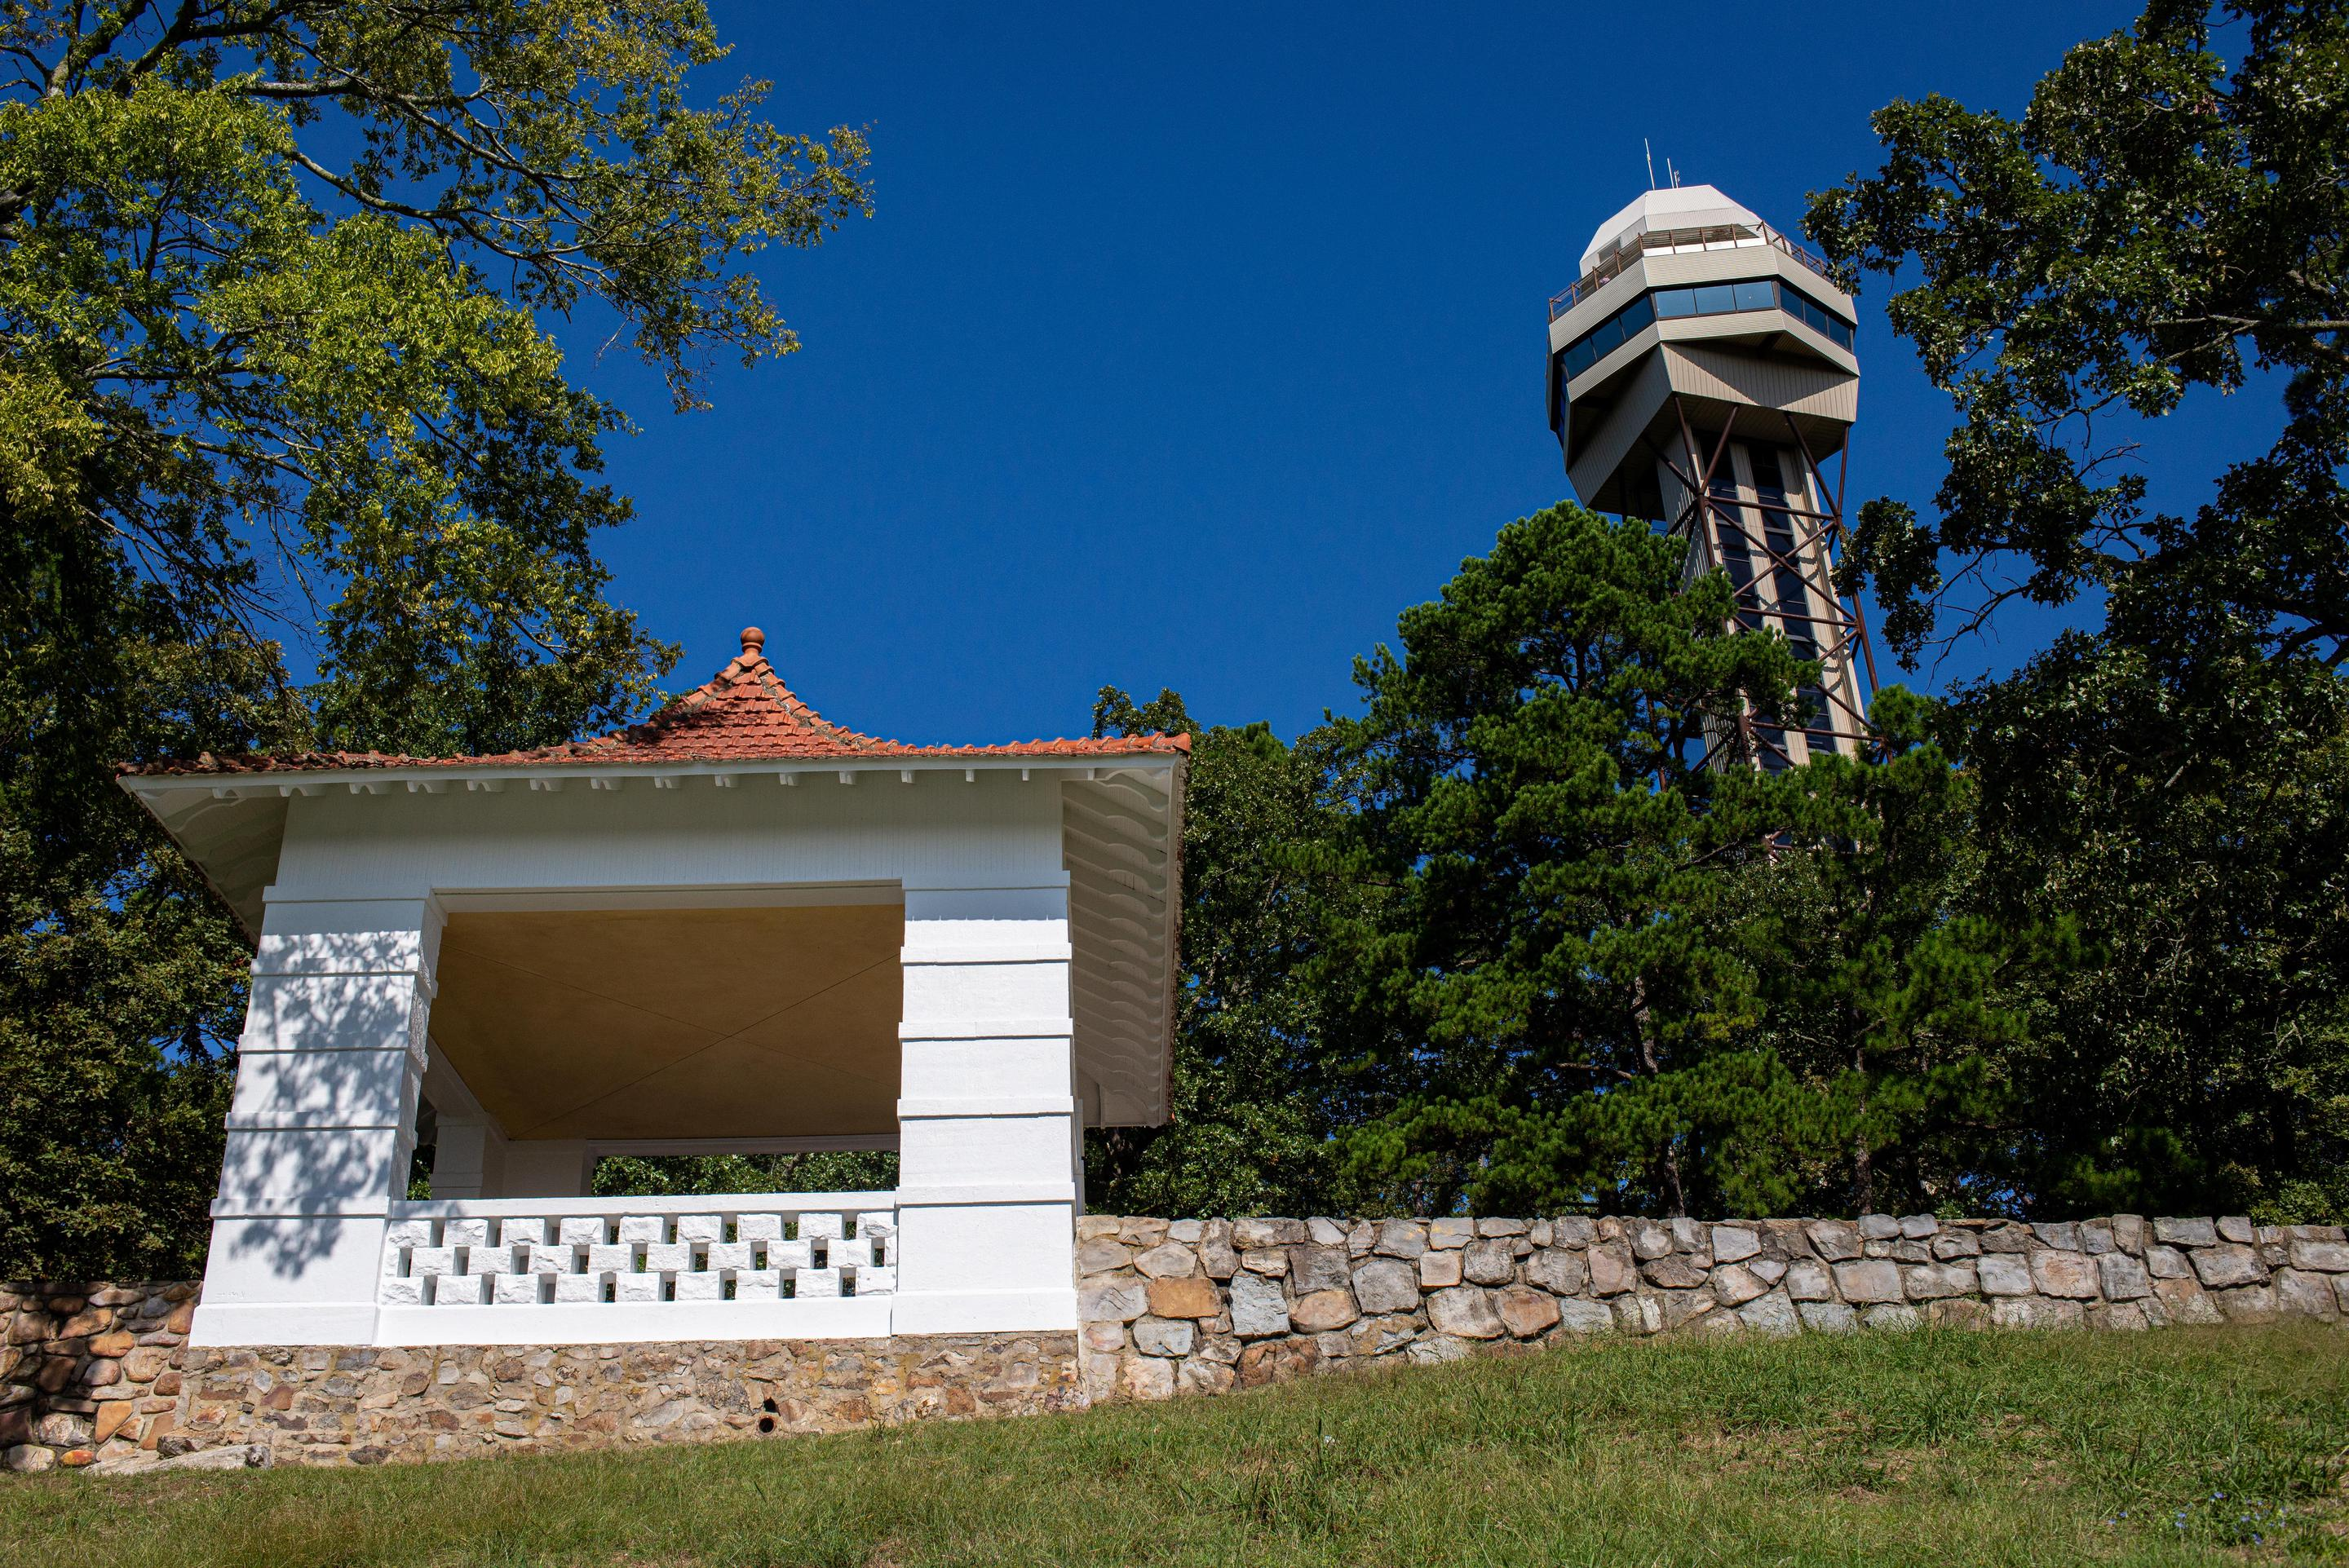 Mountain Tower and PagodaFor the best views of the Ouachita mountains, the tower and pagoda offer amazing and different sights